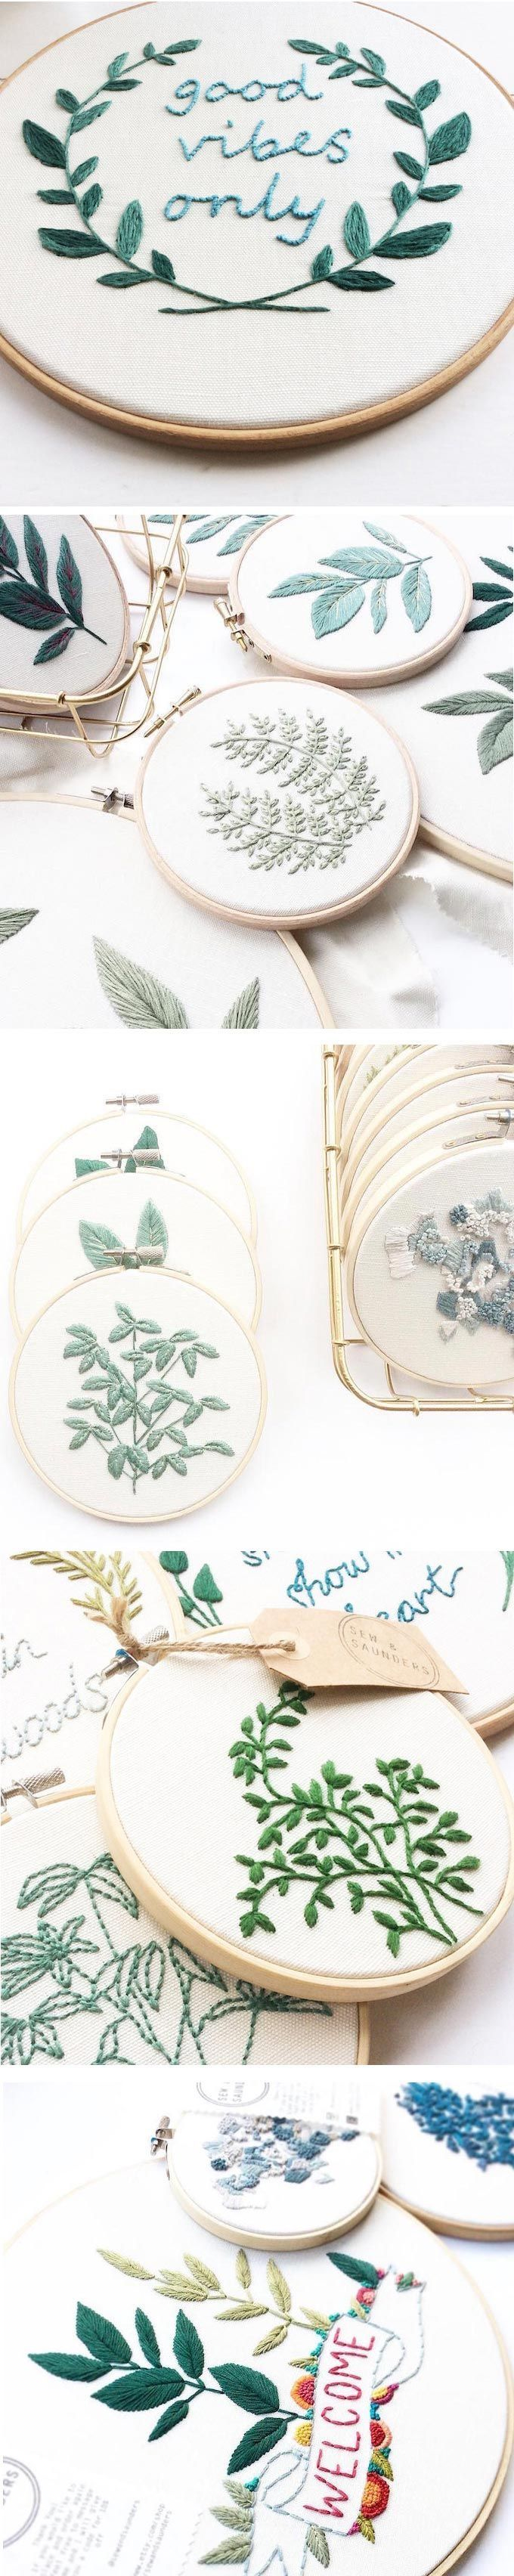 Like the idea of different leaves in frames.  Embroidery.